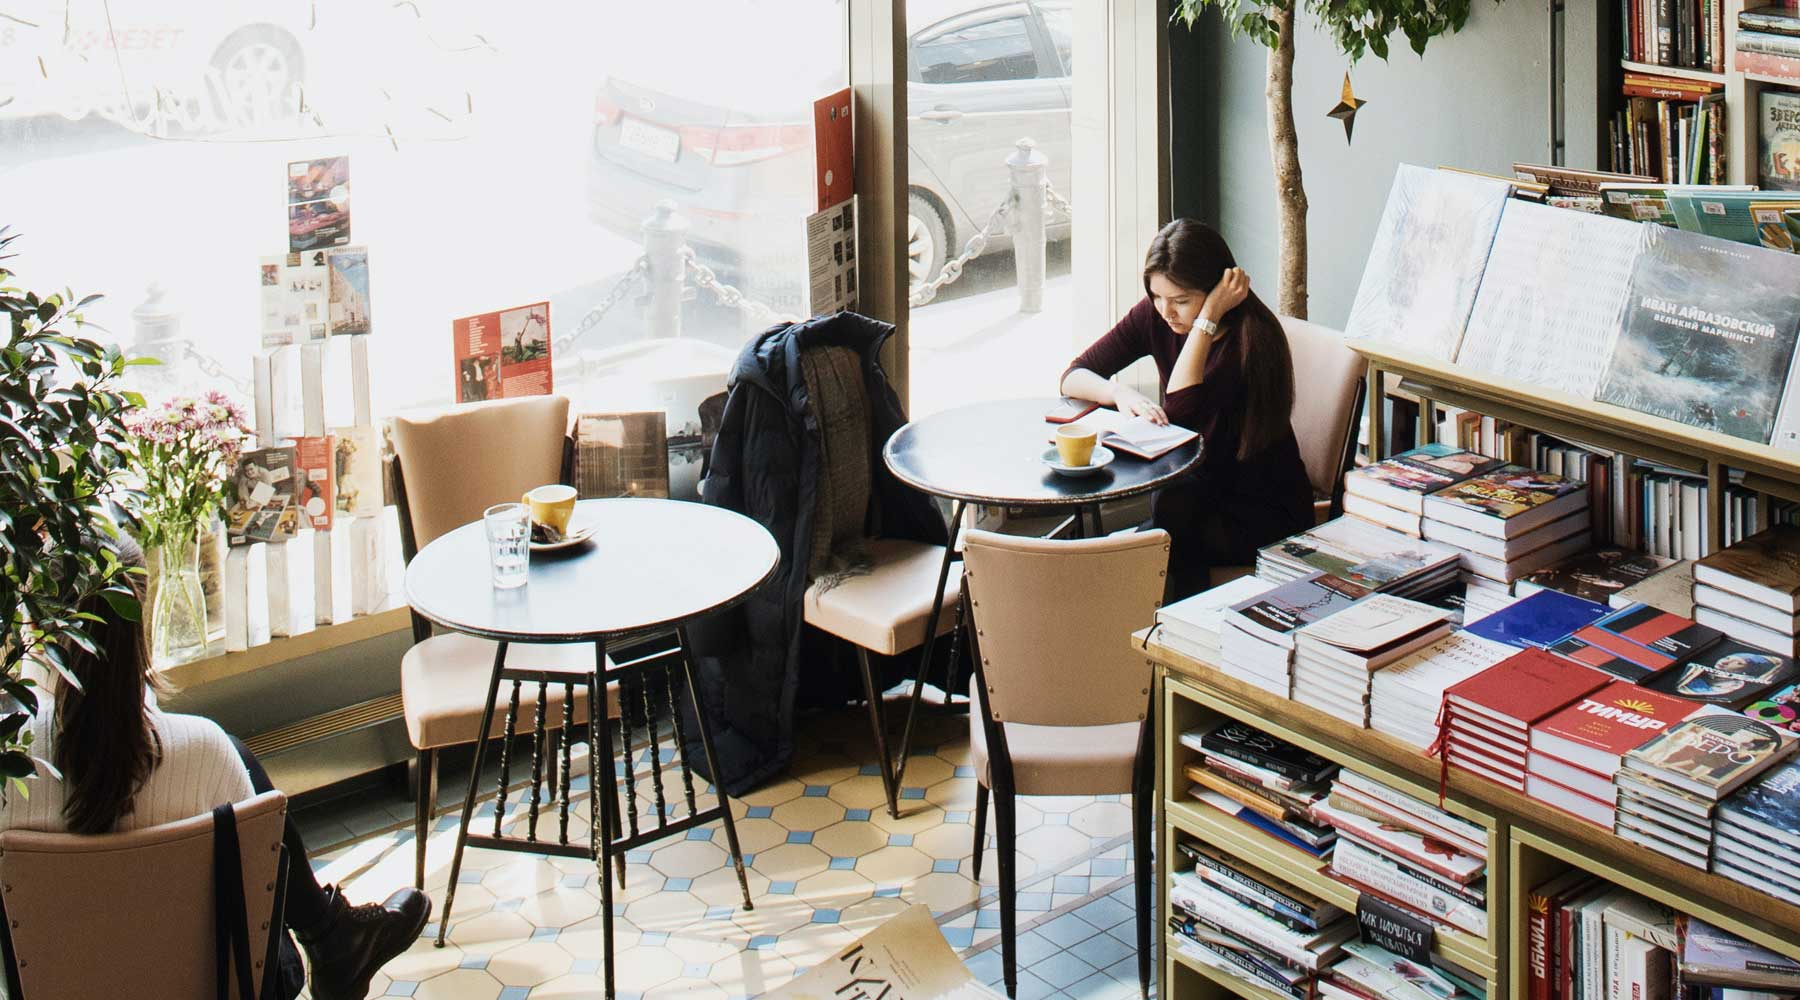 Women focused on work at a cafe.